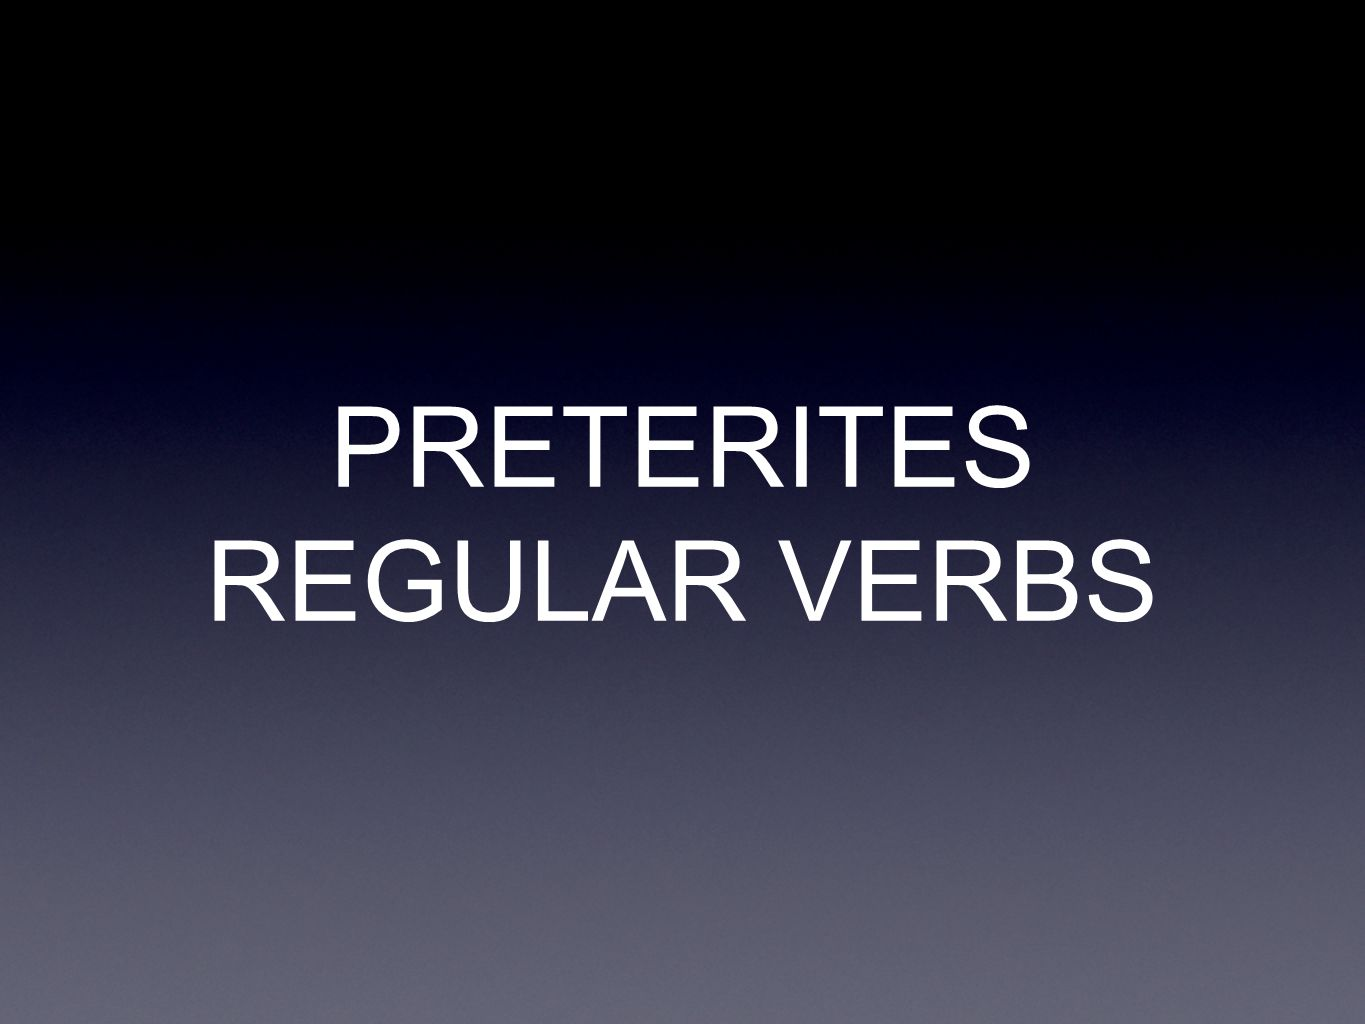 PRETERITES REGULAR VERBS